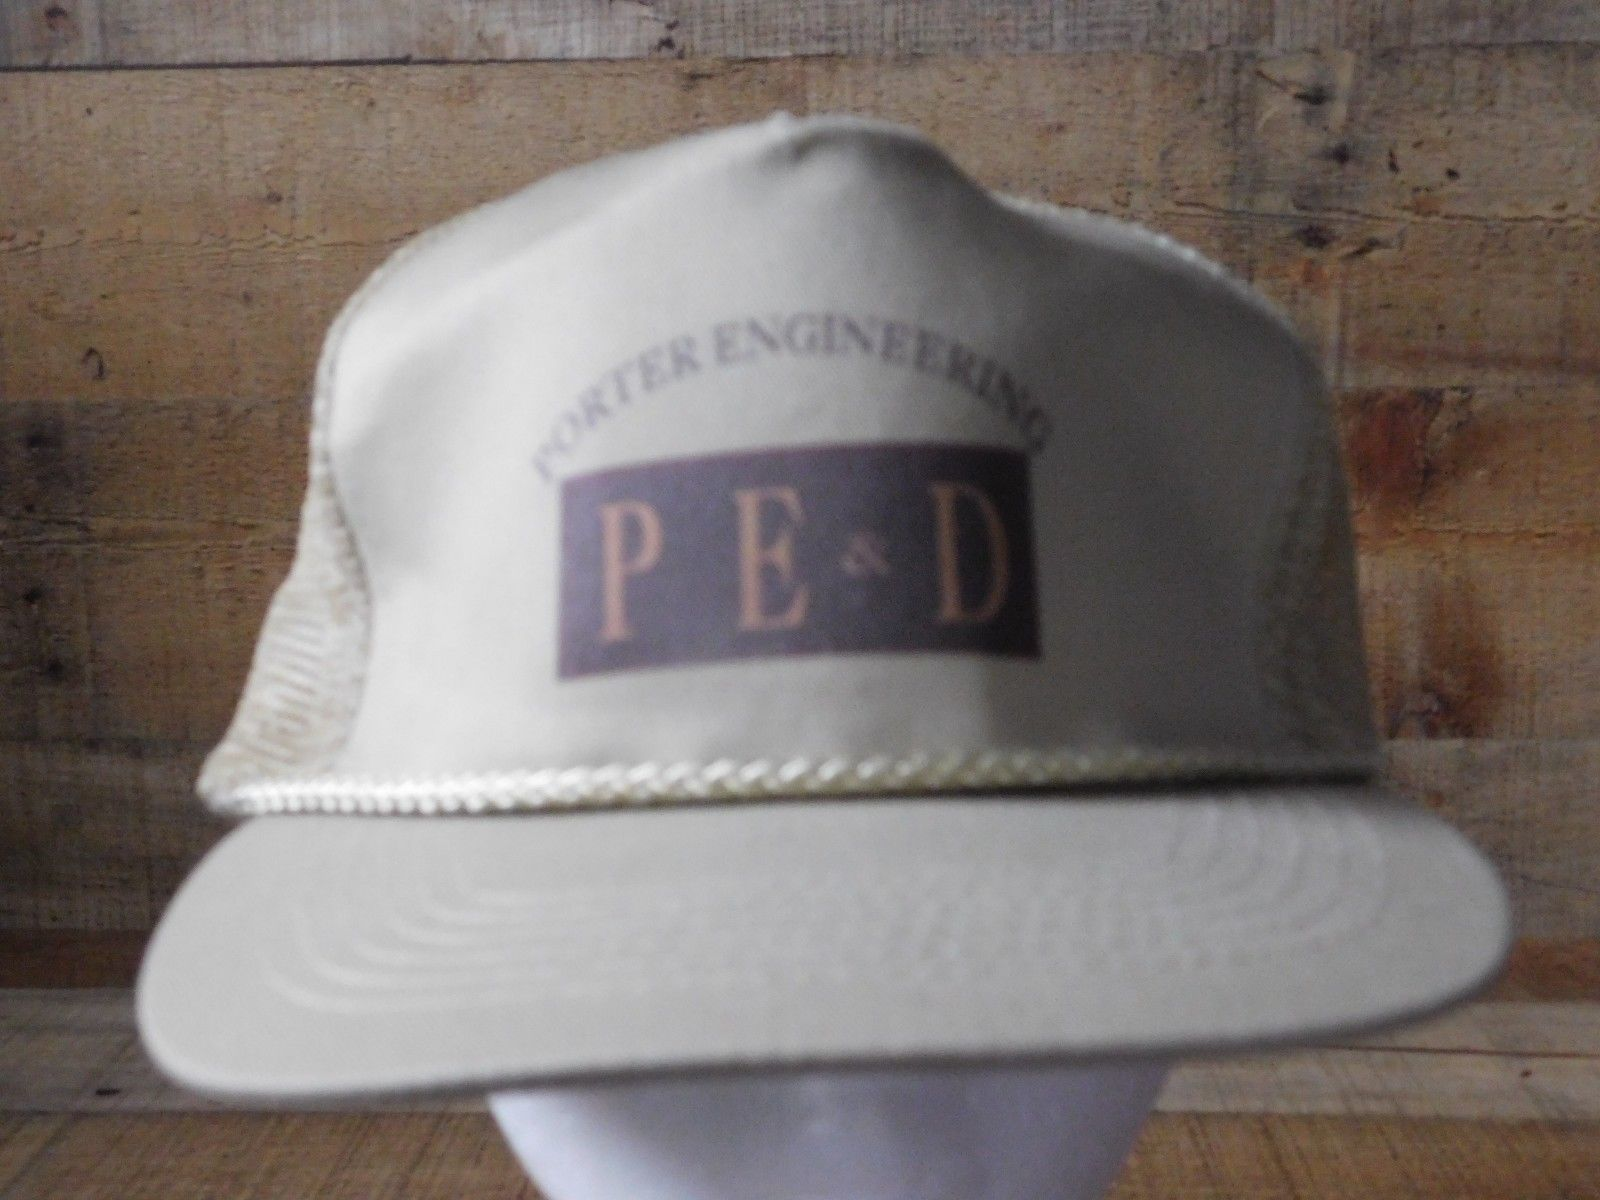 Primary image for Porter Engineering P E & D Snapback Adjustable Adult Hat Cap